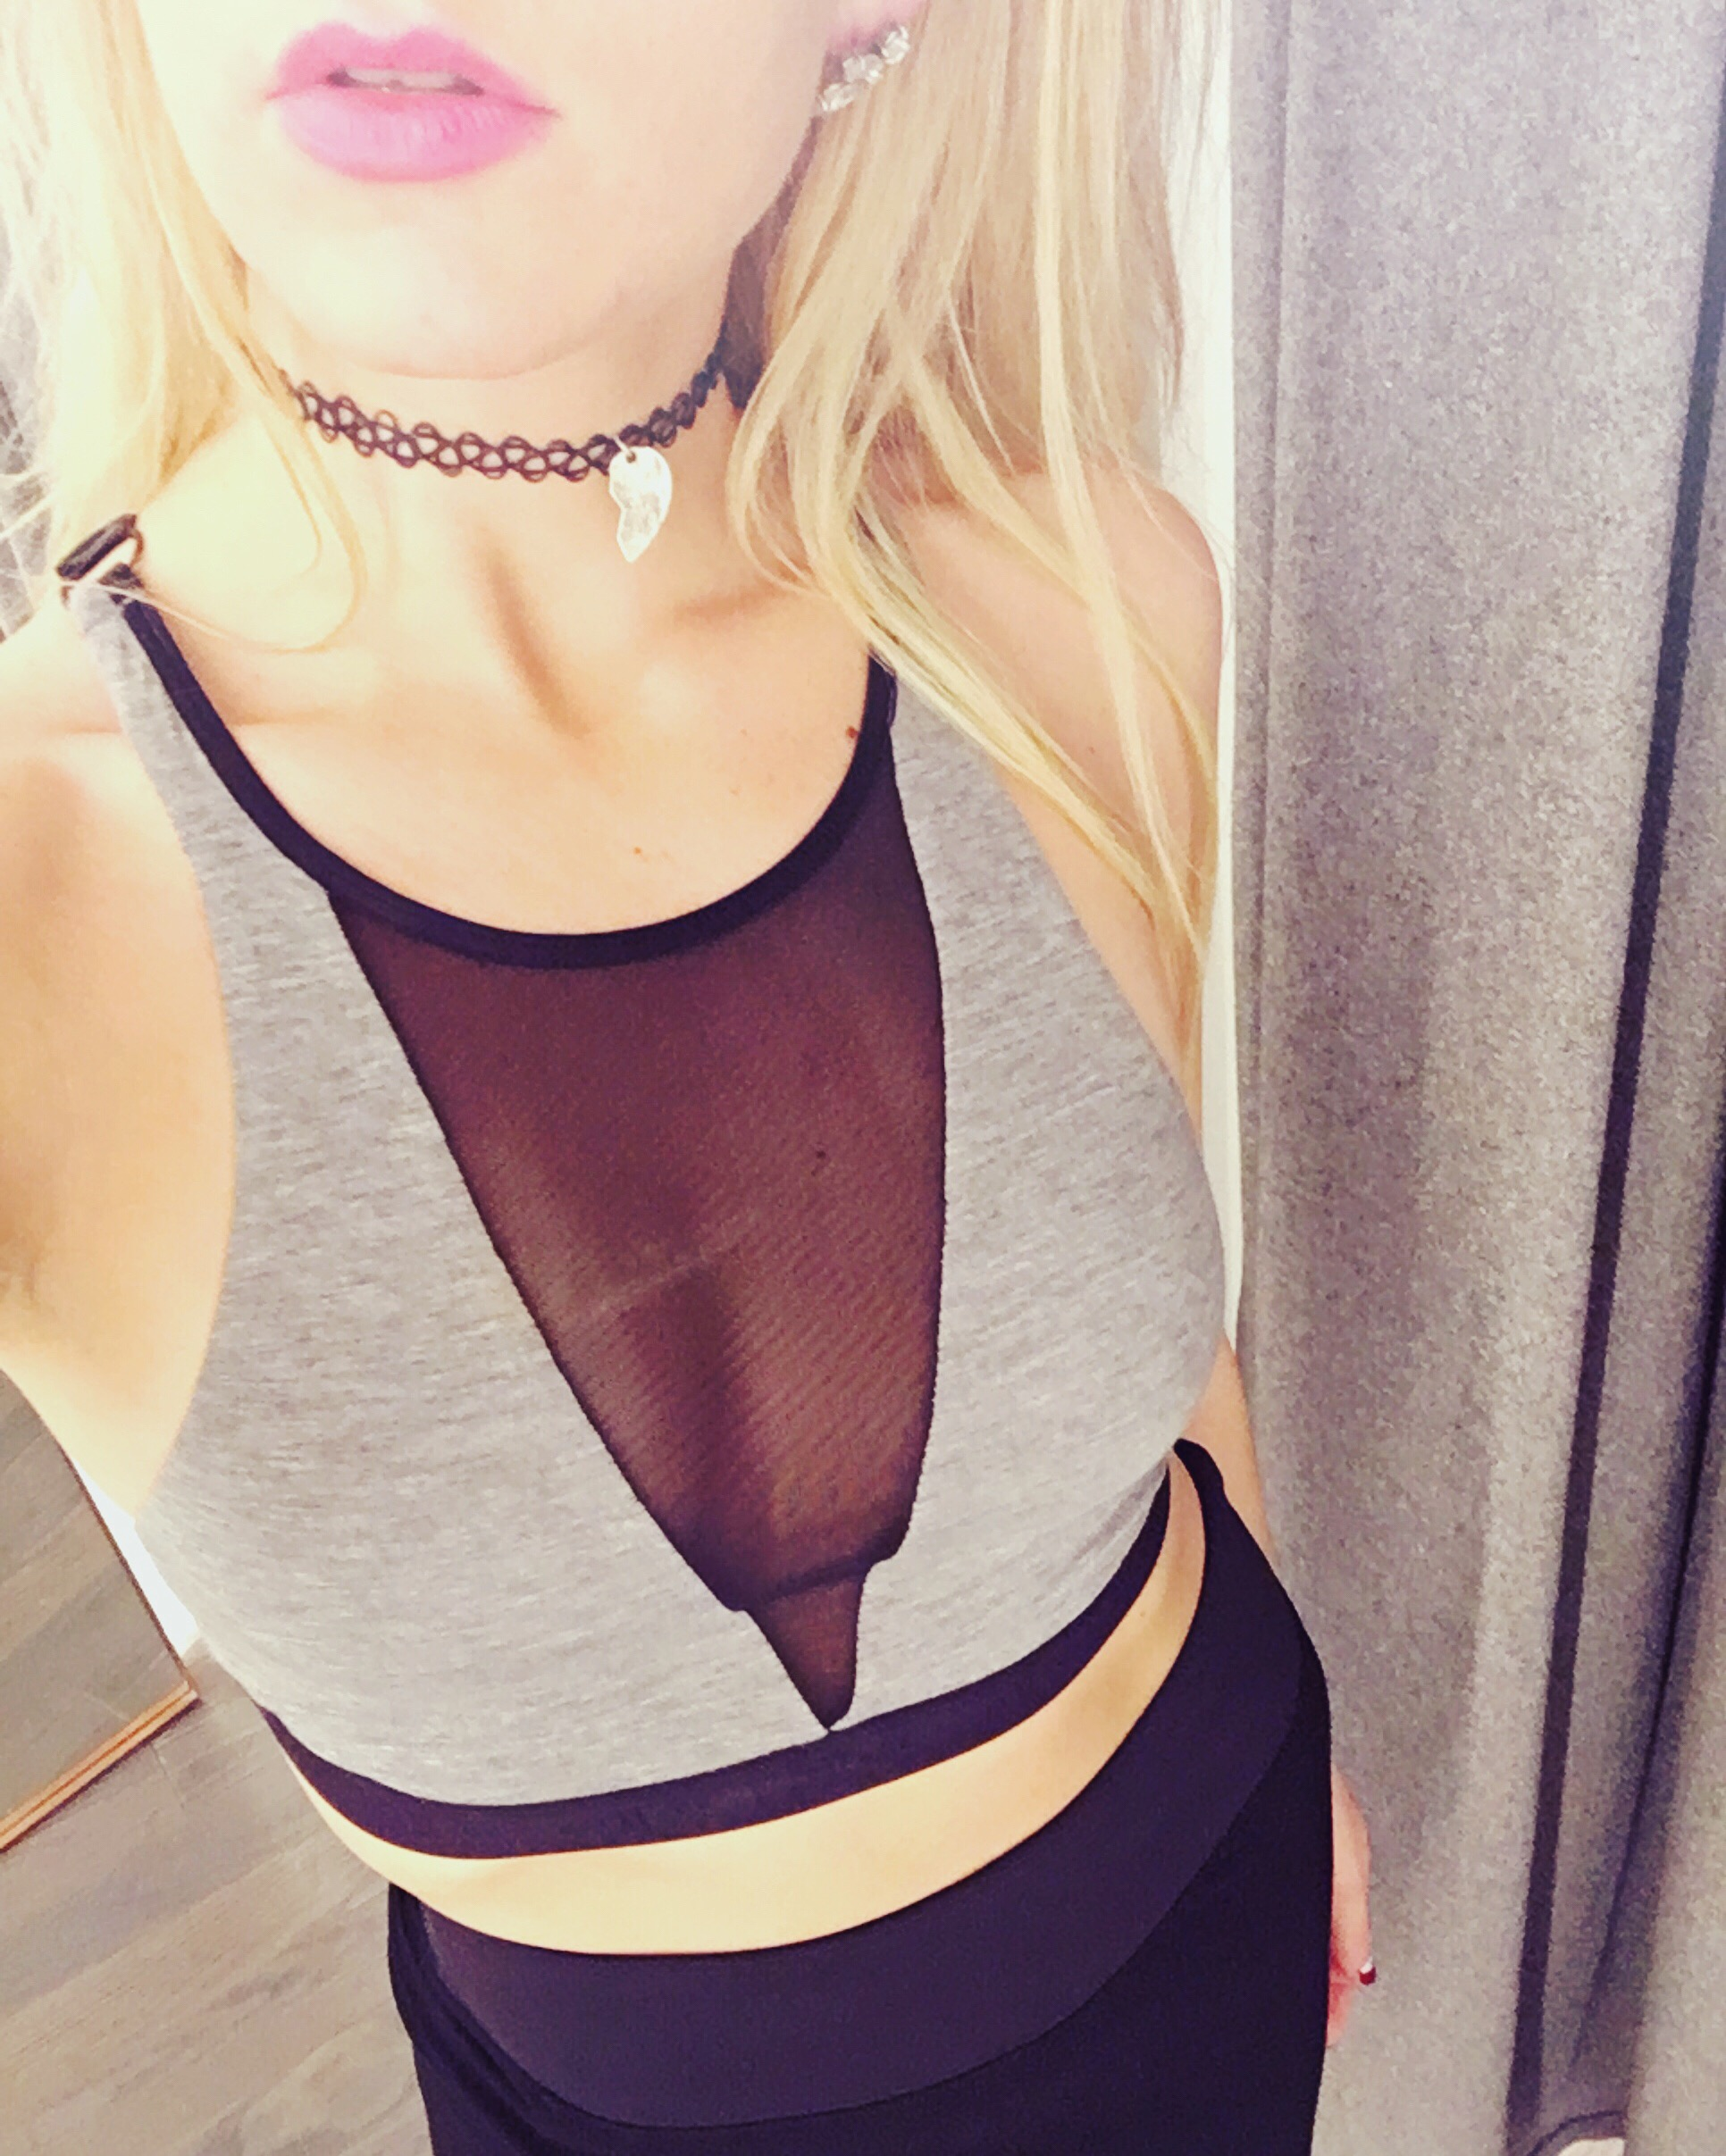 By Your Side Vent Bra, $48